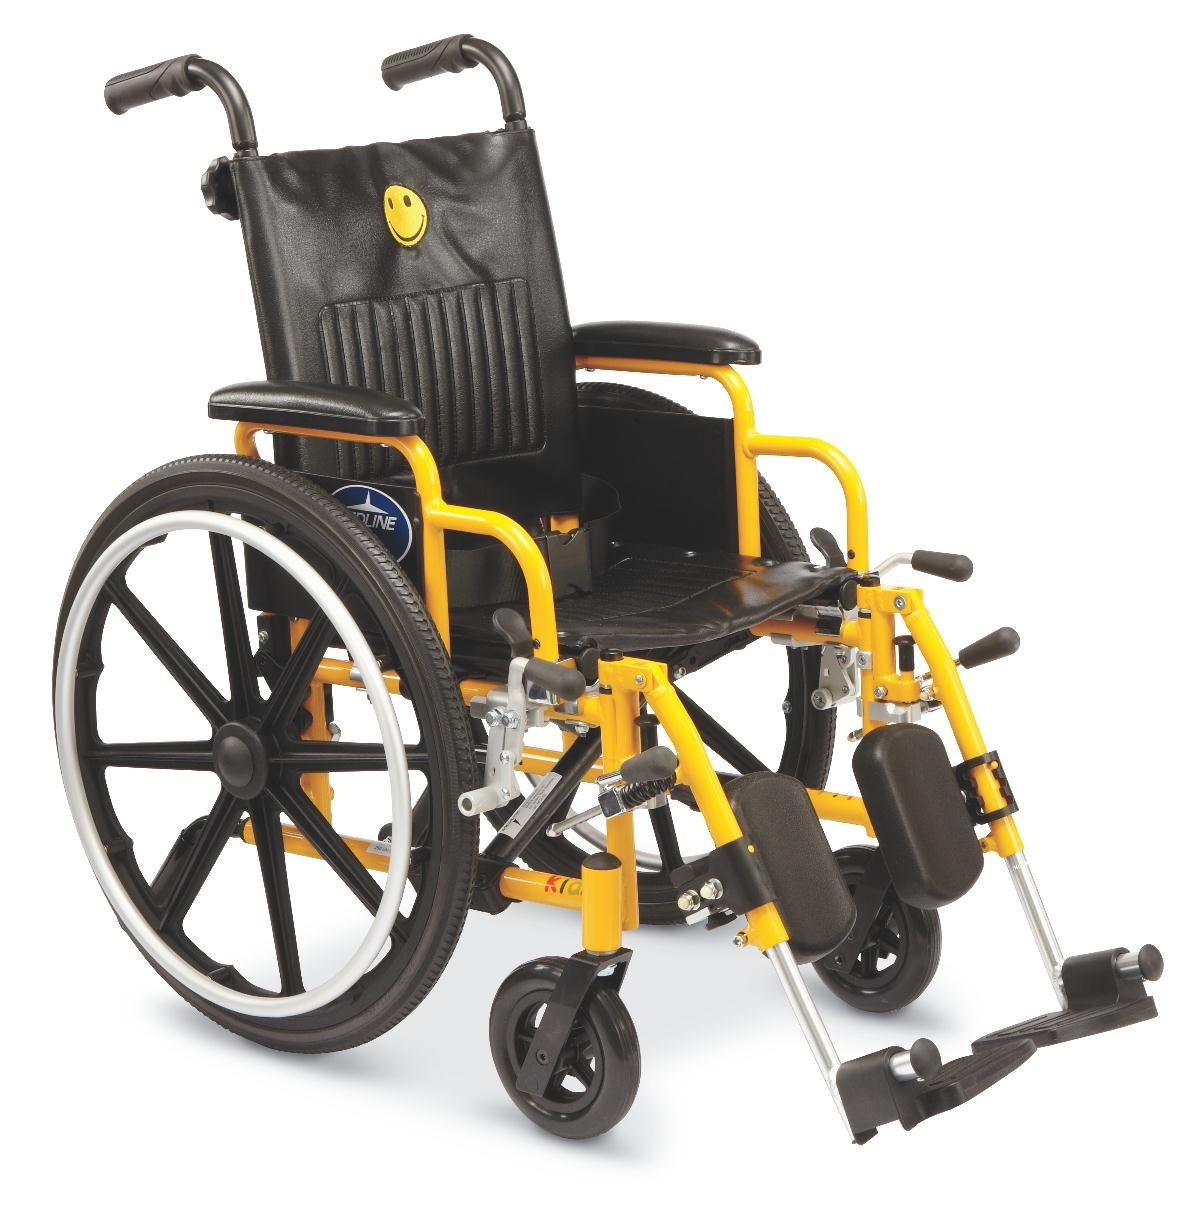 Swell Medline Kids Pediatric Wheelchair 14 Wide Seat Swing Away Desk Length Arms Elevating Leg Rests Yellow Frame Is Great For Children Ncnpc Chair Design For Home Ncnpcorg